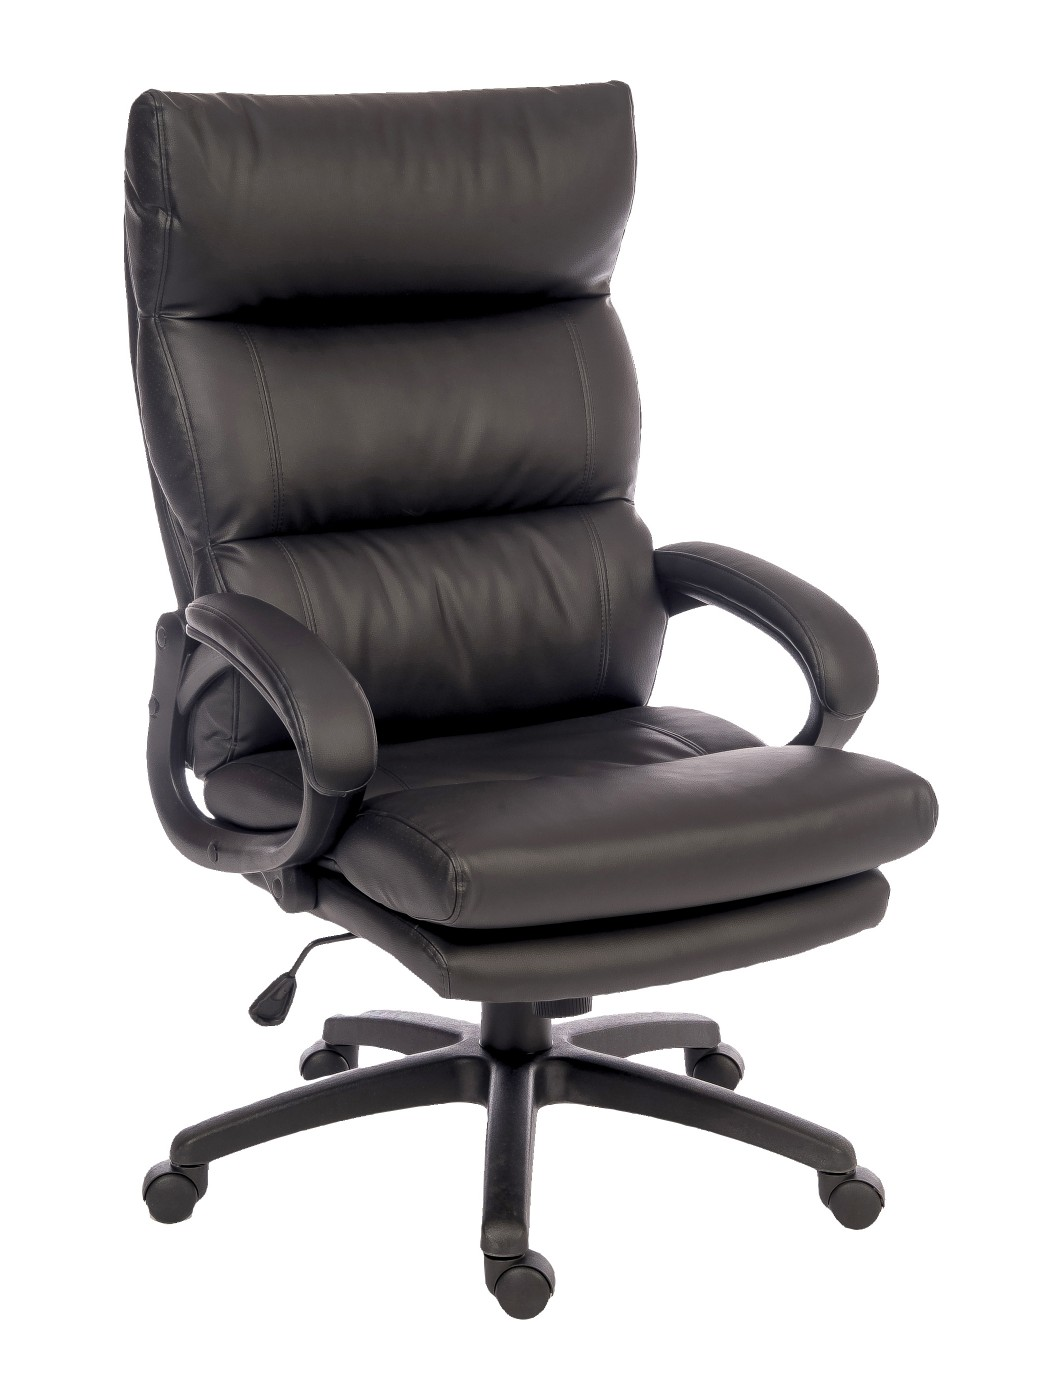 Executive Office Furniture: Luxe Executive Office Chair 6913